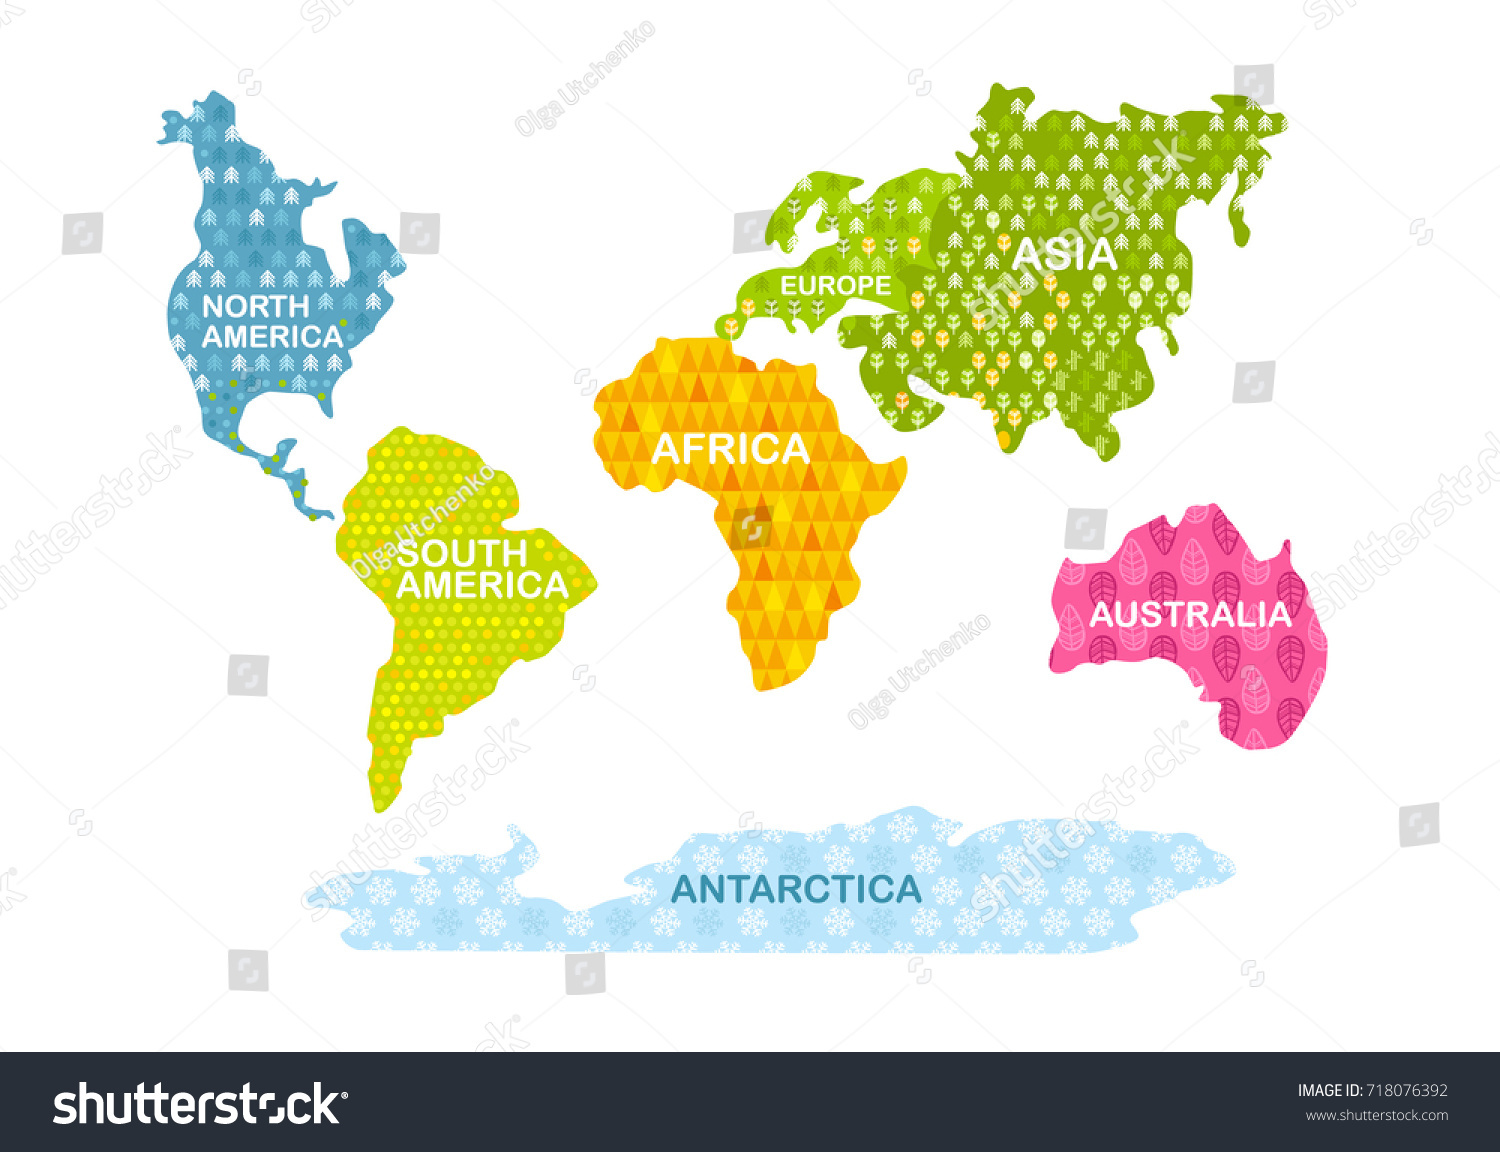 Colorful world map continents patterns africa stock vector 718076392 colorful world map continents with patterns africa america asia europe publicscrutiny Images